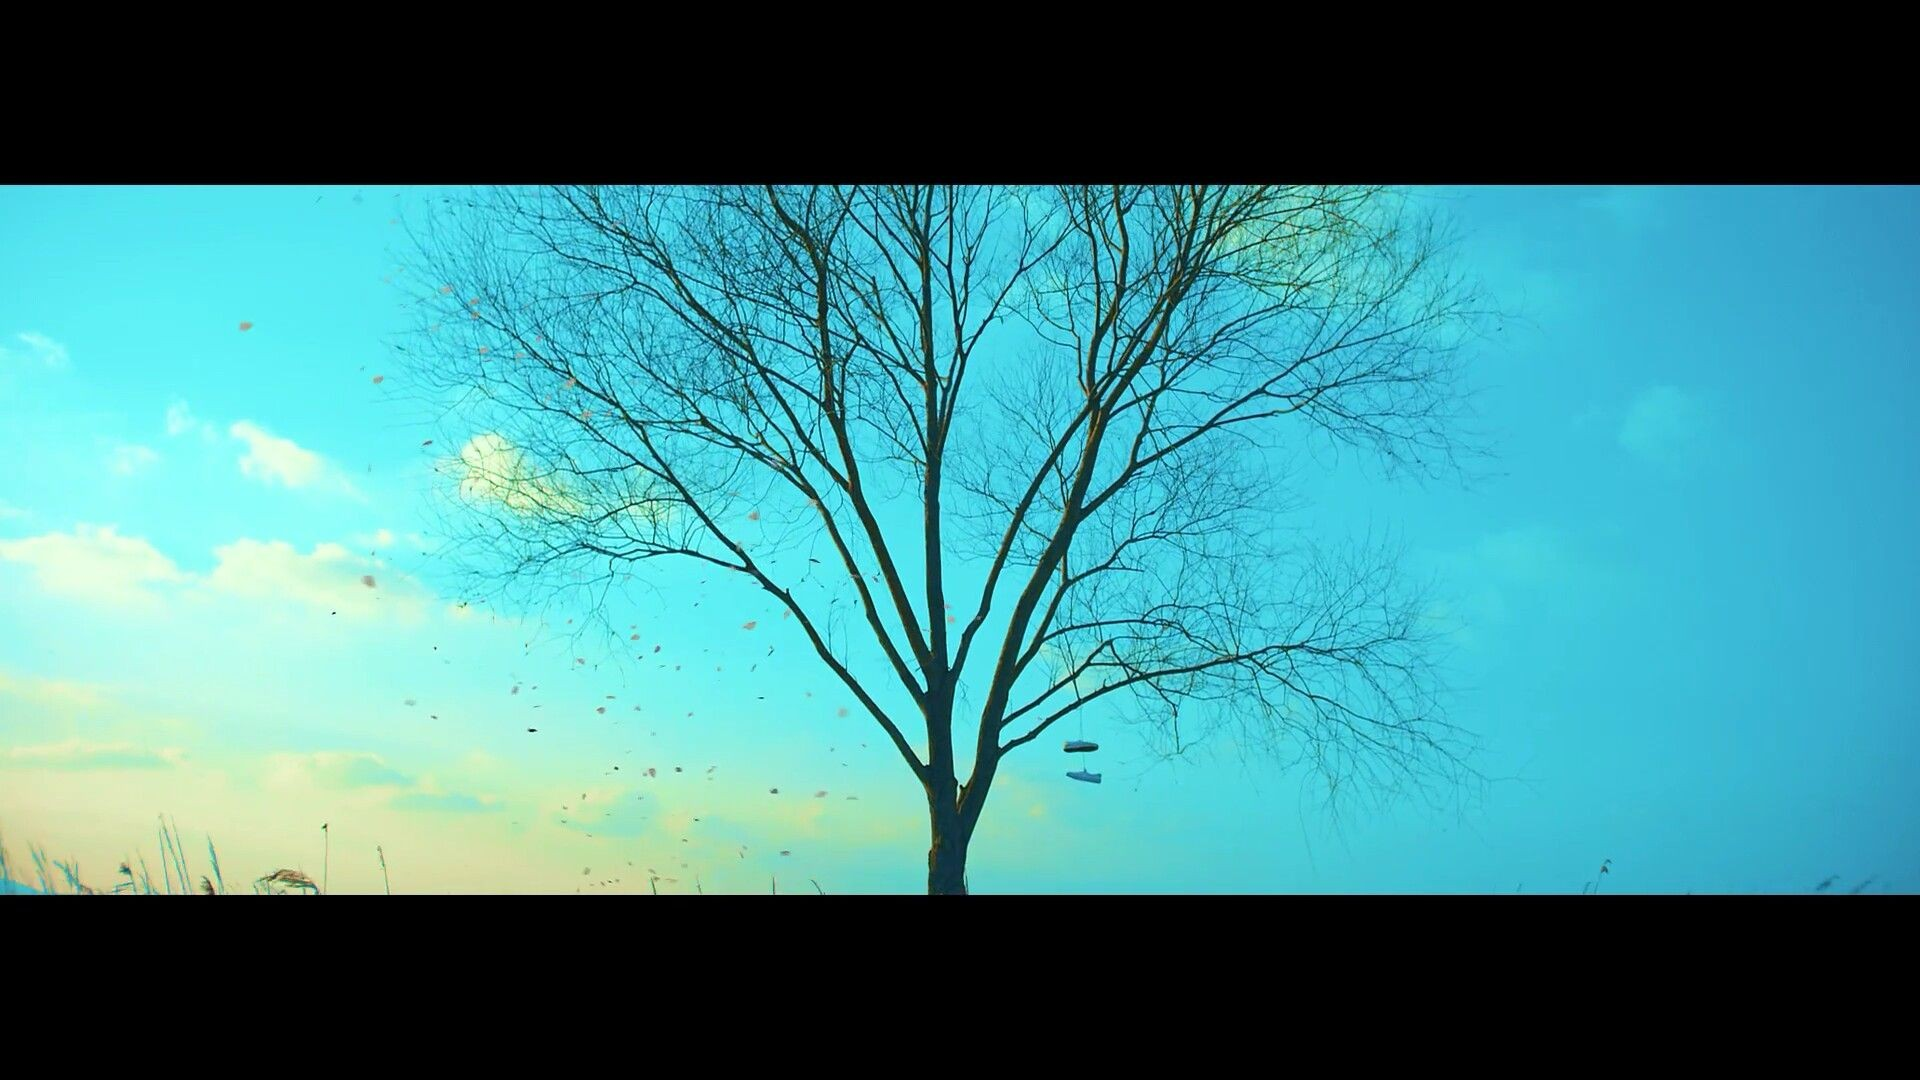 Spring Day Wallpaper posted by Zoey Sellers 1920x1080